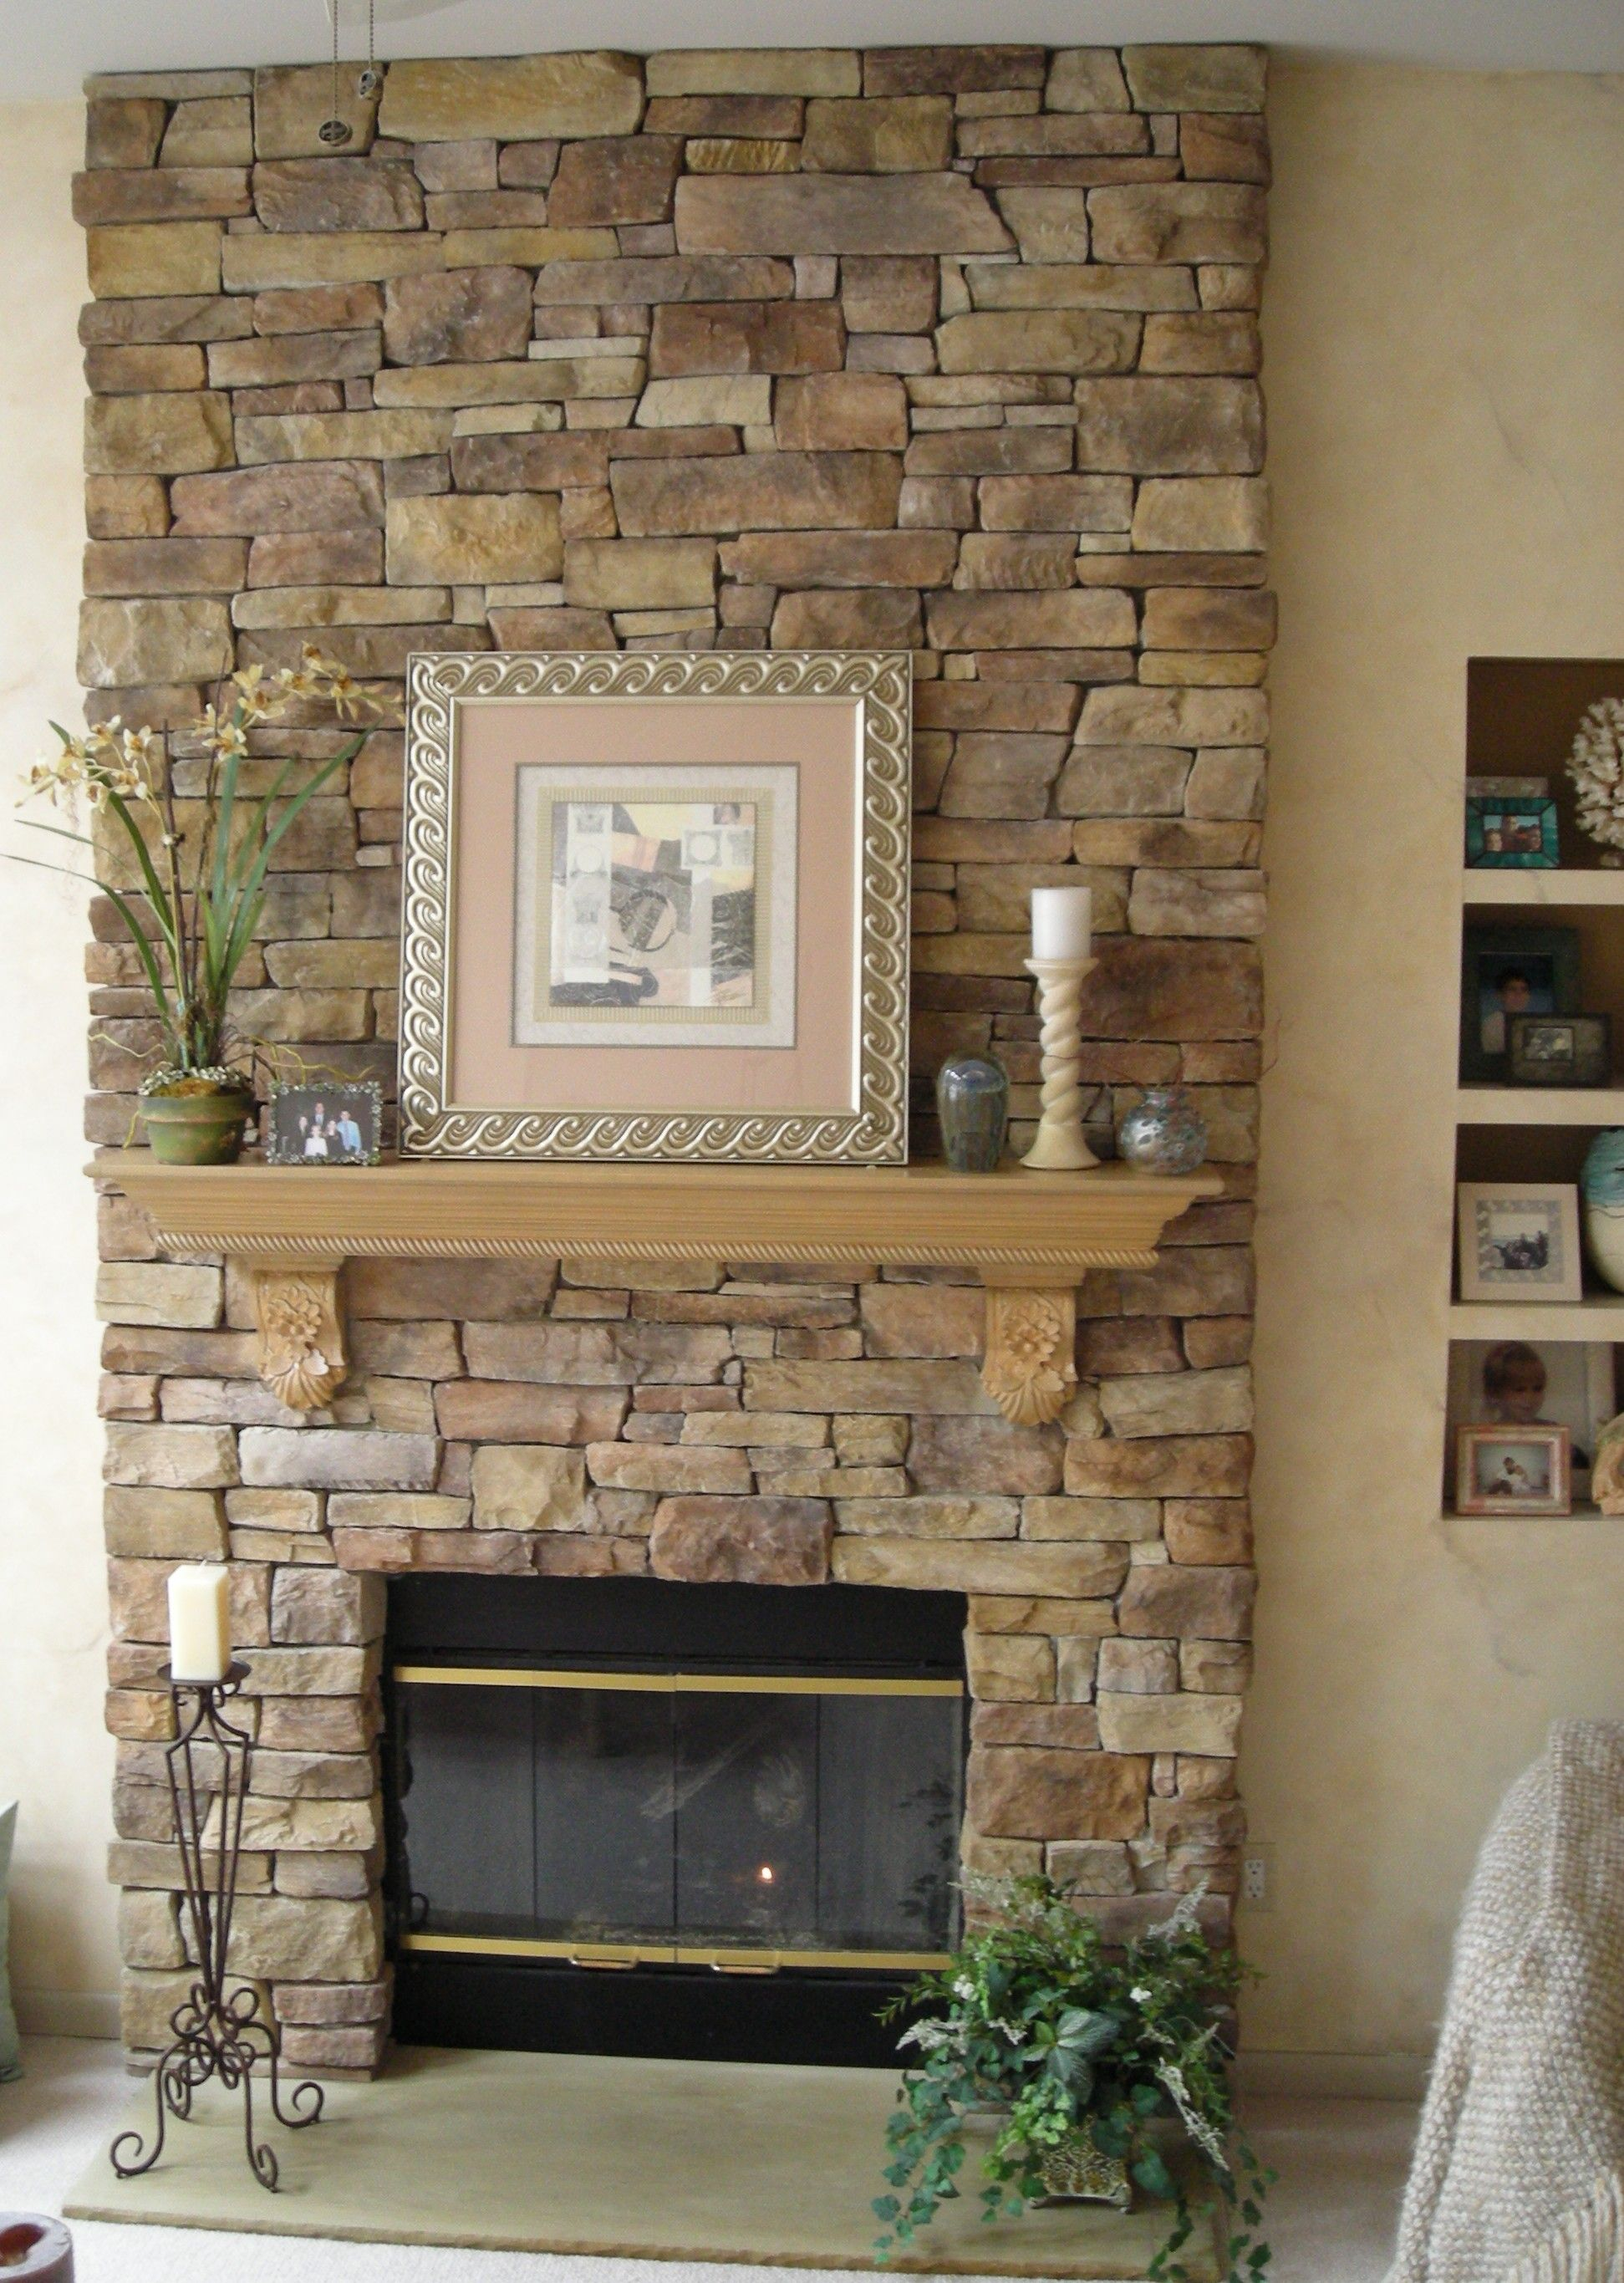 Interior Stone Fireplace Specializes In Faux Stone Veneer And Natural Stone Design Description